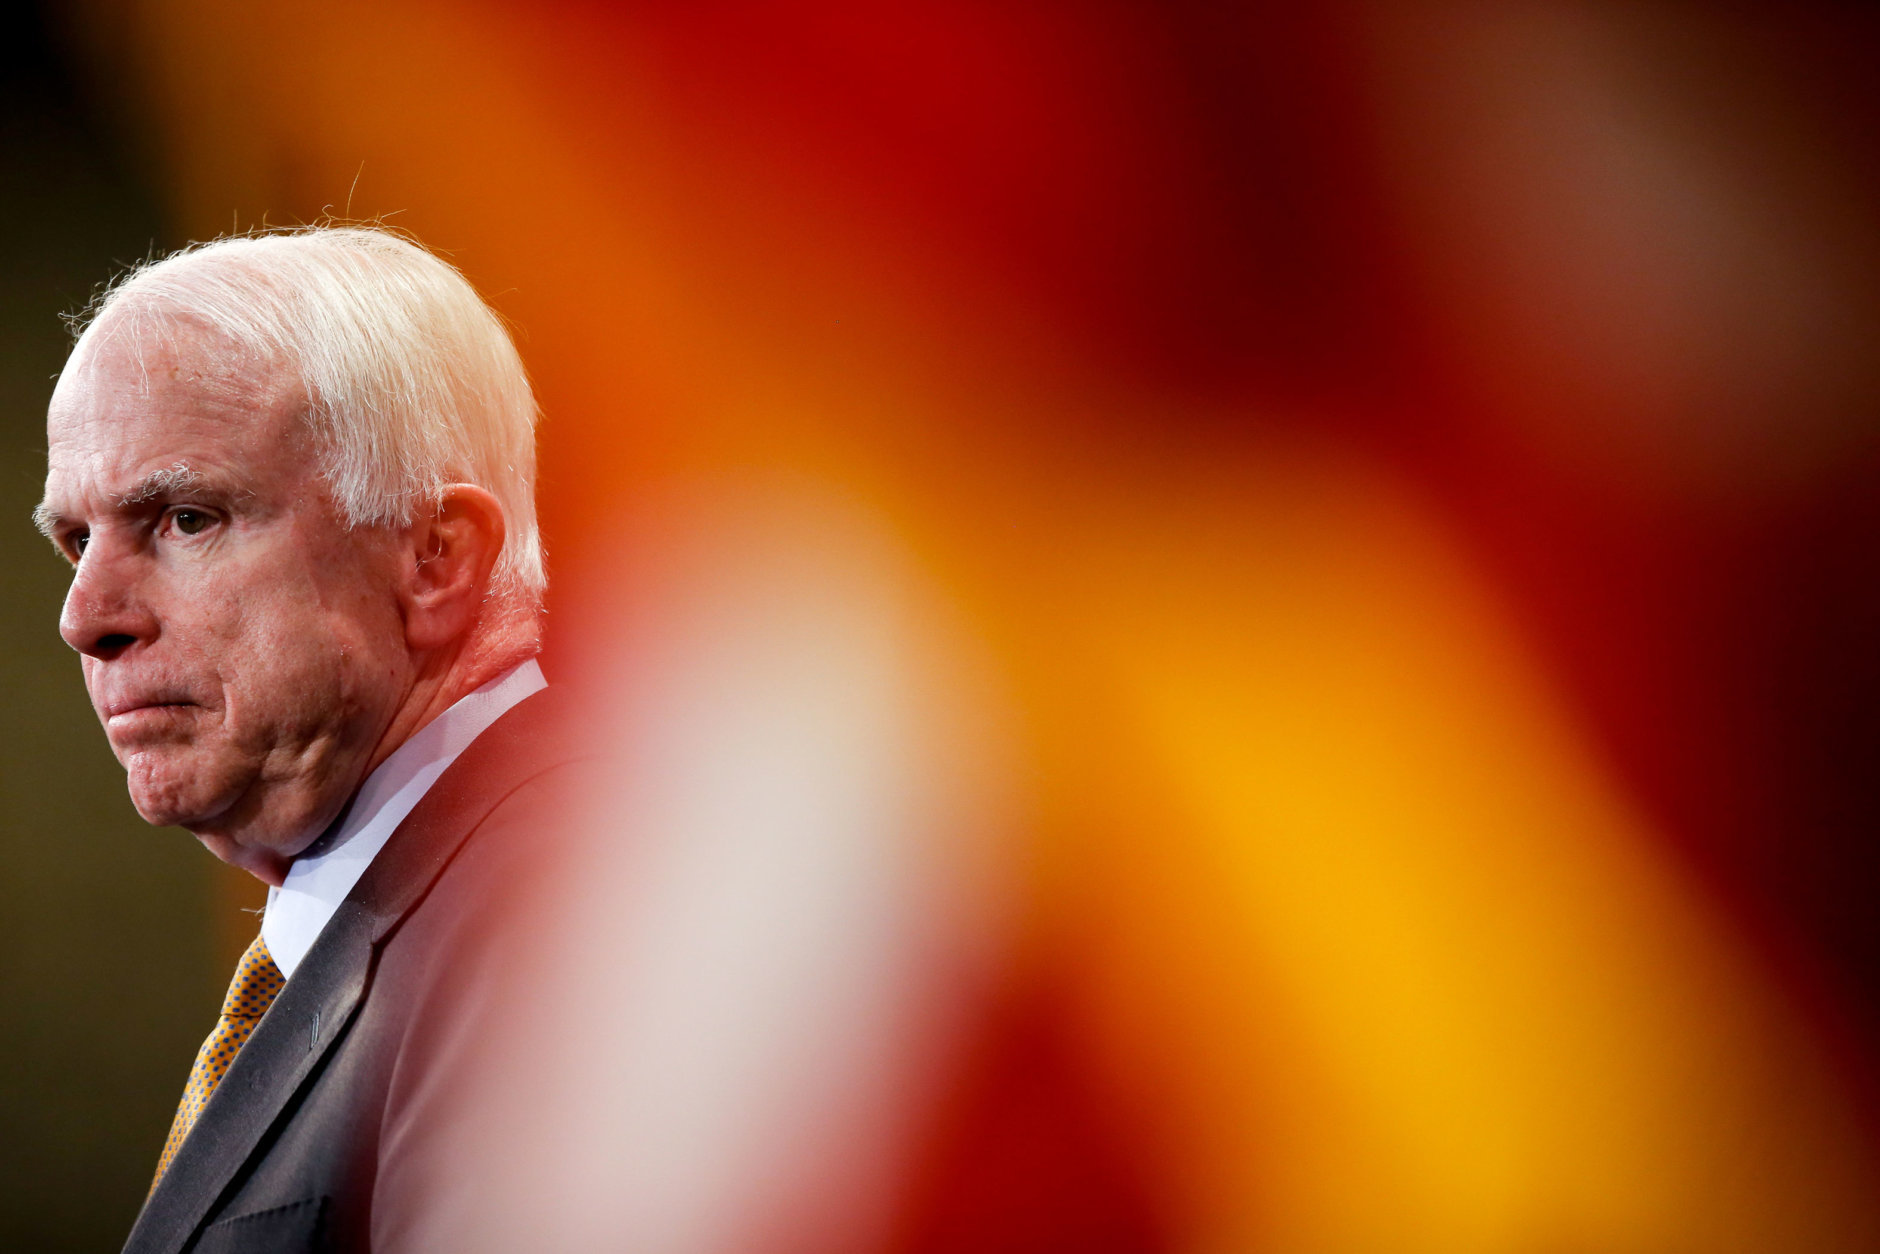 Sen. John McCain, R-Ariz., during a press conference on Capitol Hill in Washington on Thursday, March 26, 2015, on the situation in Yemen. (AP Photo/Andrew Harnik)